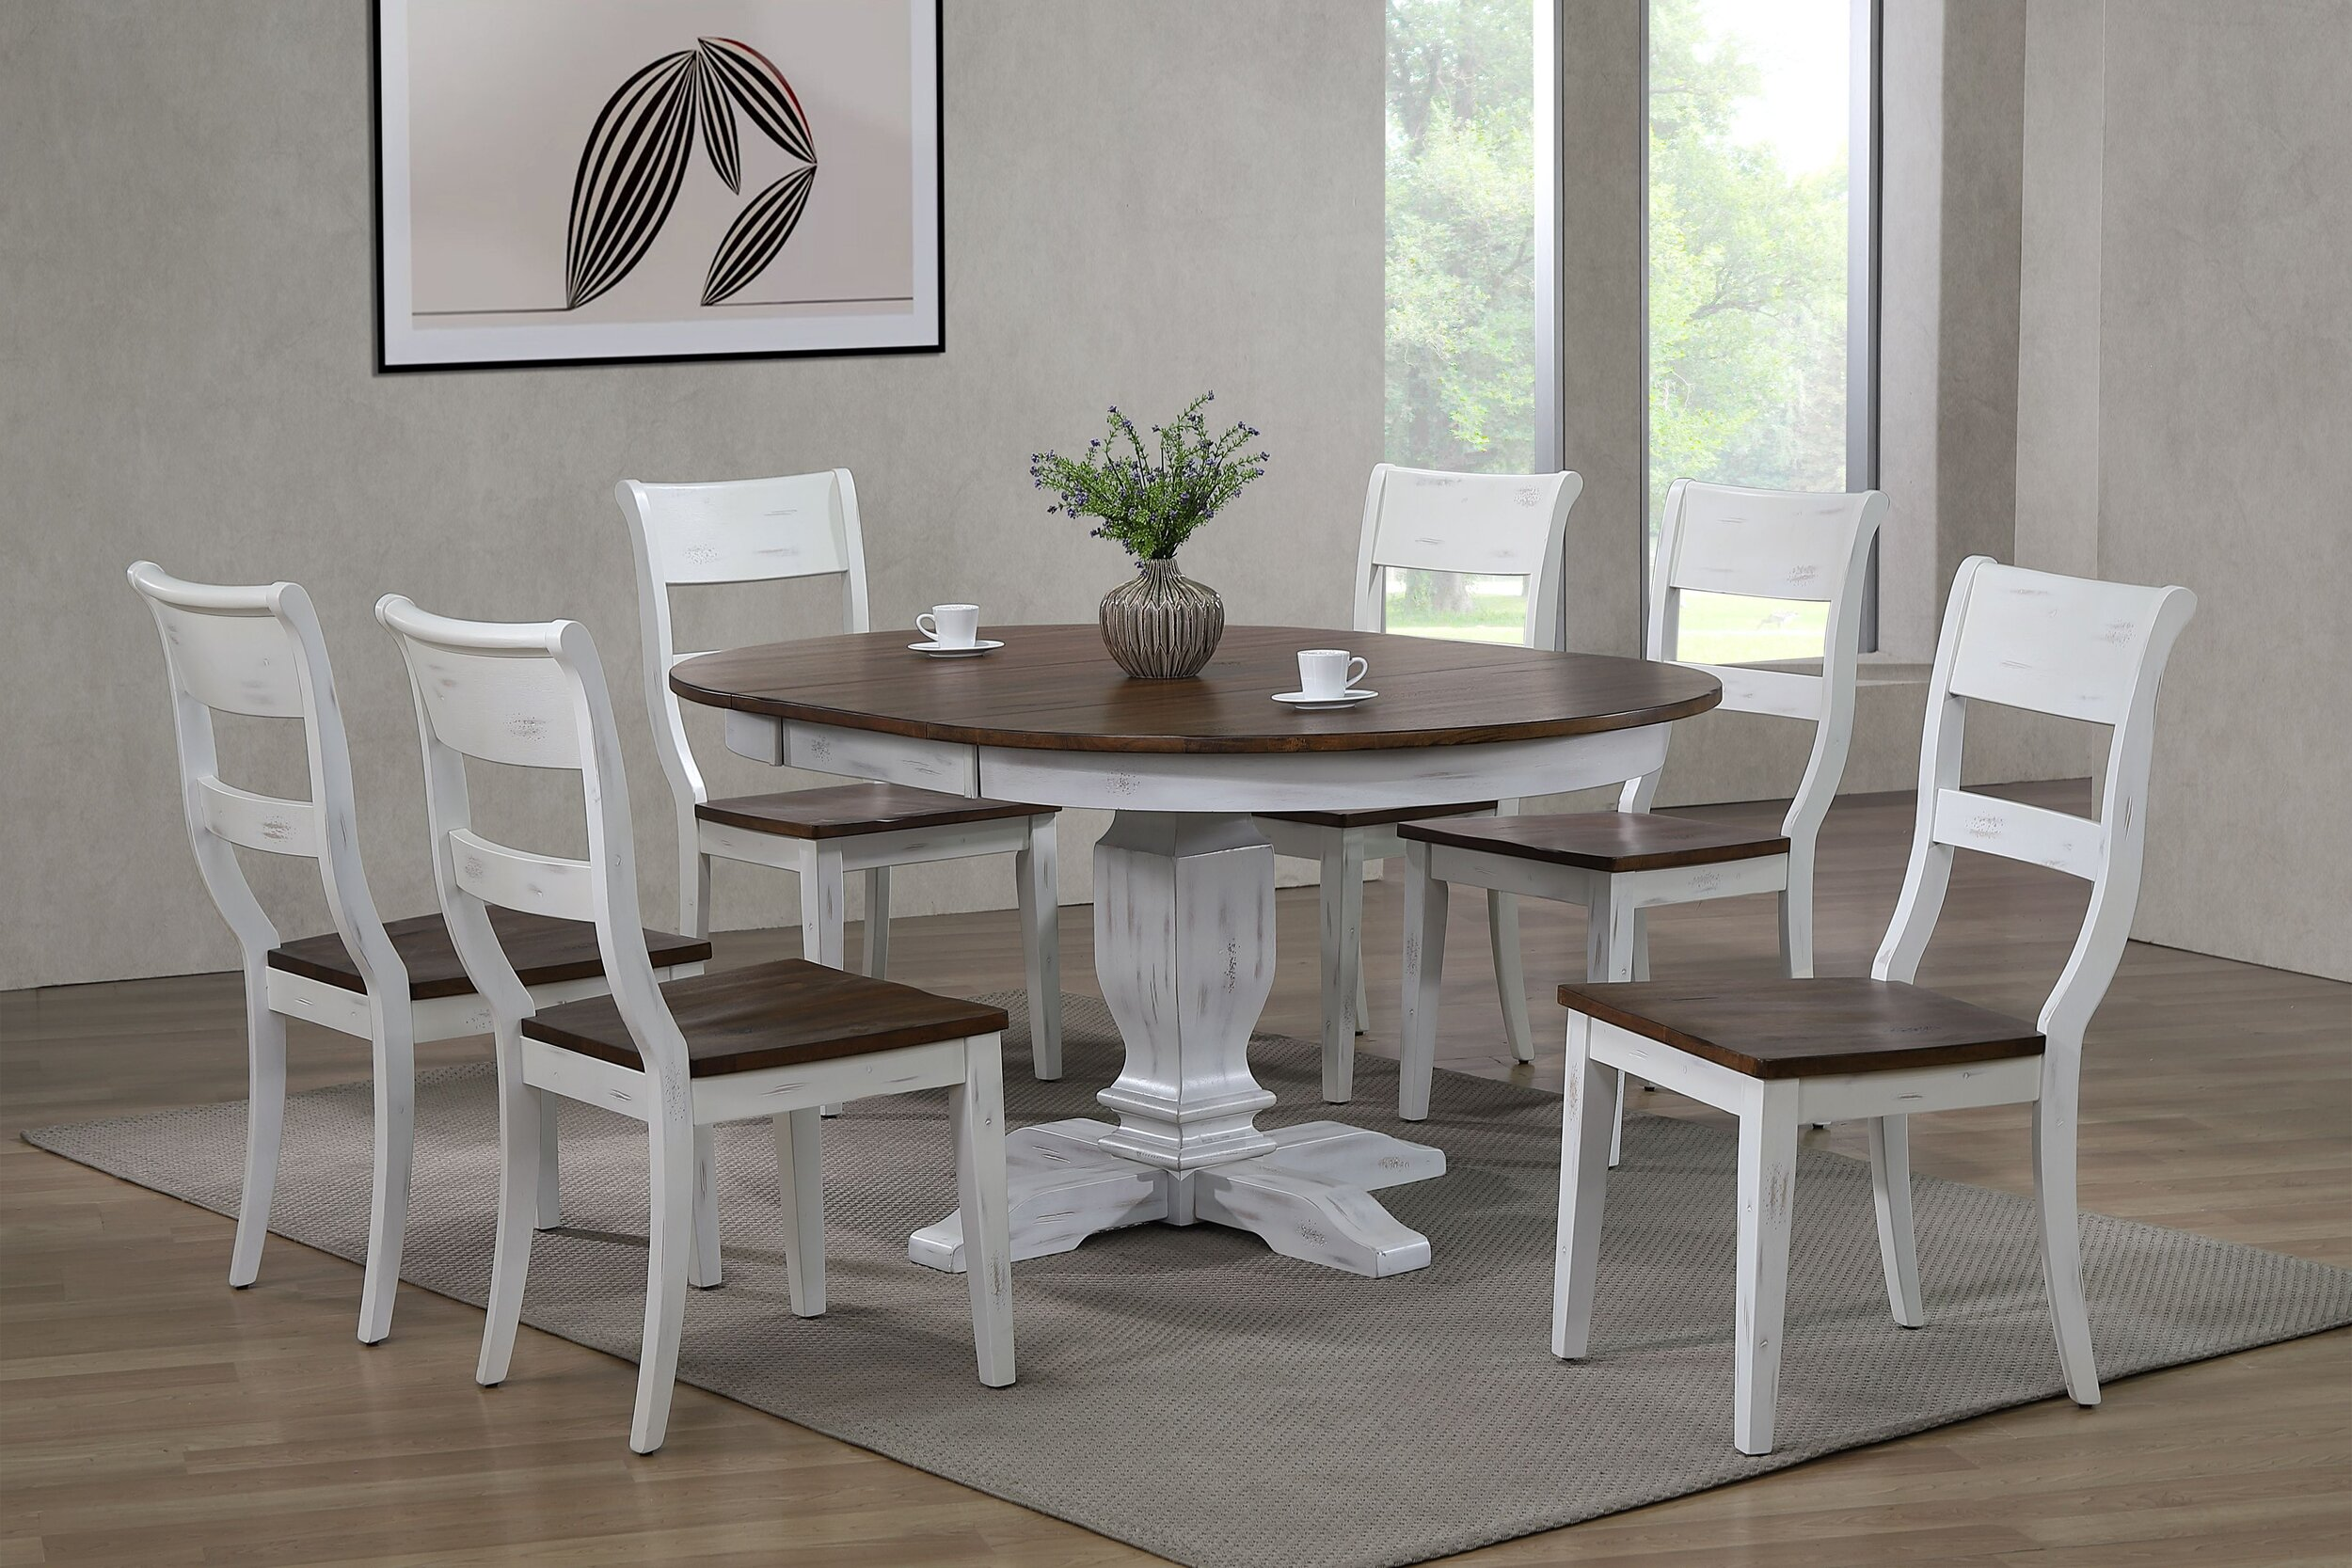 "45""x45""x63"" Transitional Table In Distressed Cocoa Brown & Cotton White (7-Piece Dining Set)"